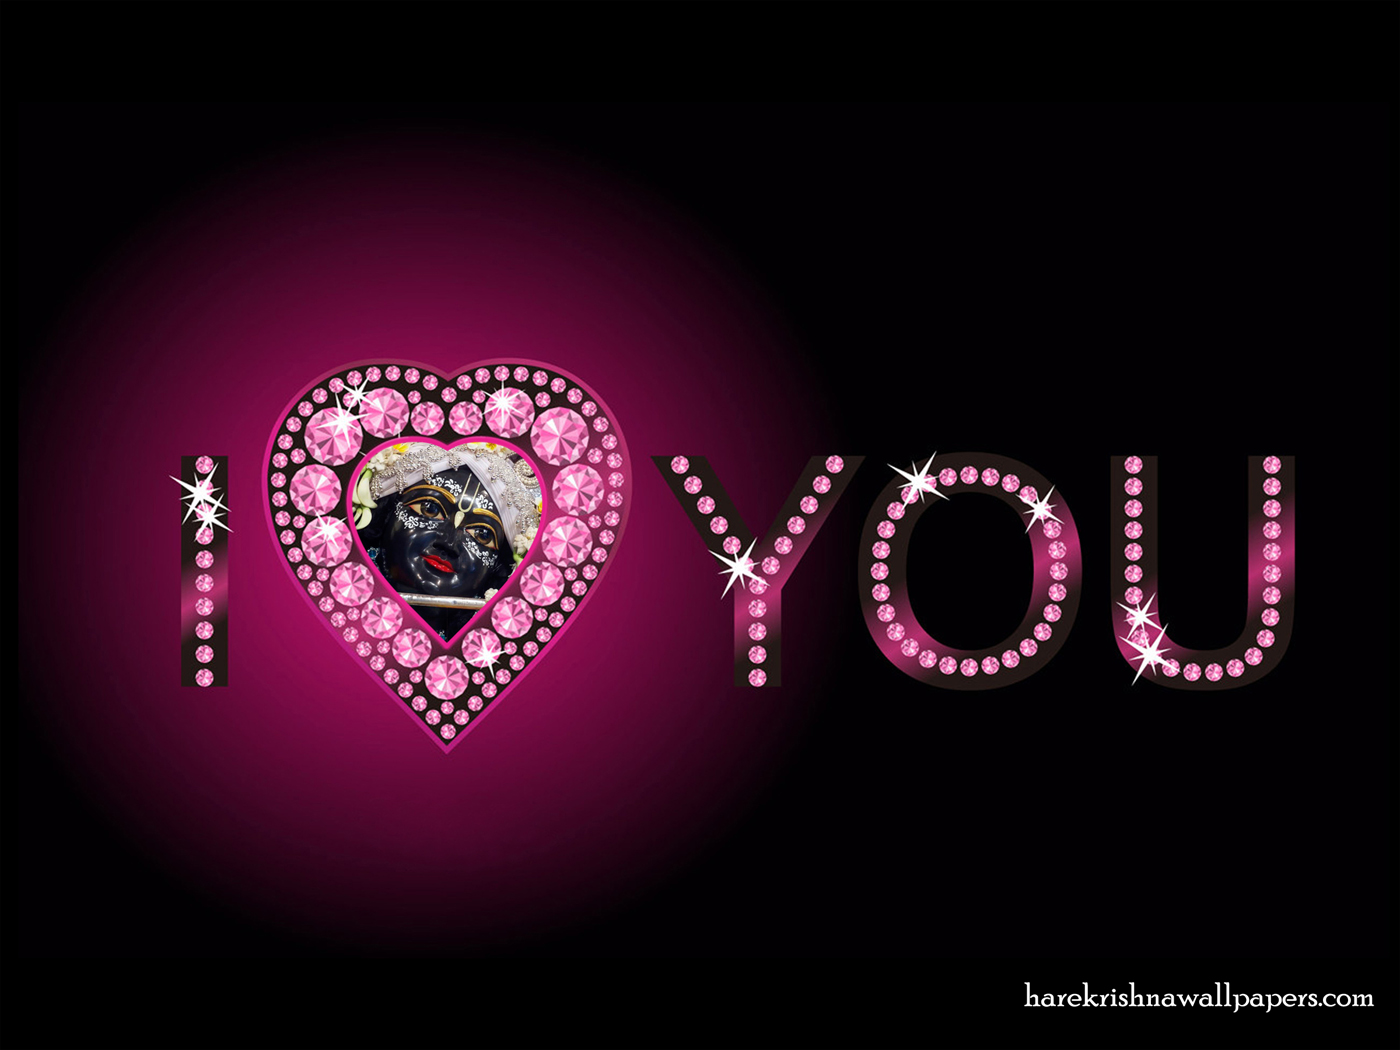 I Love You Madhava Wallpaper (005) Size 1400x1050 Download